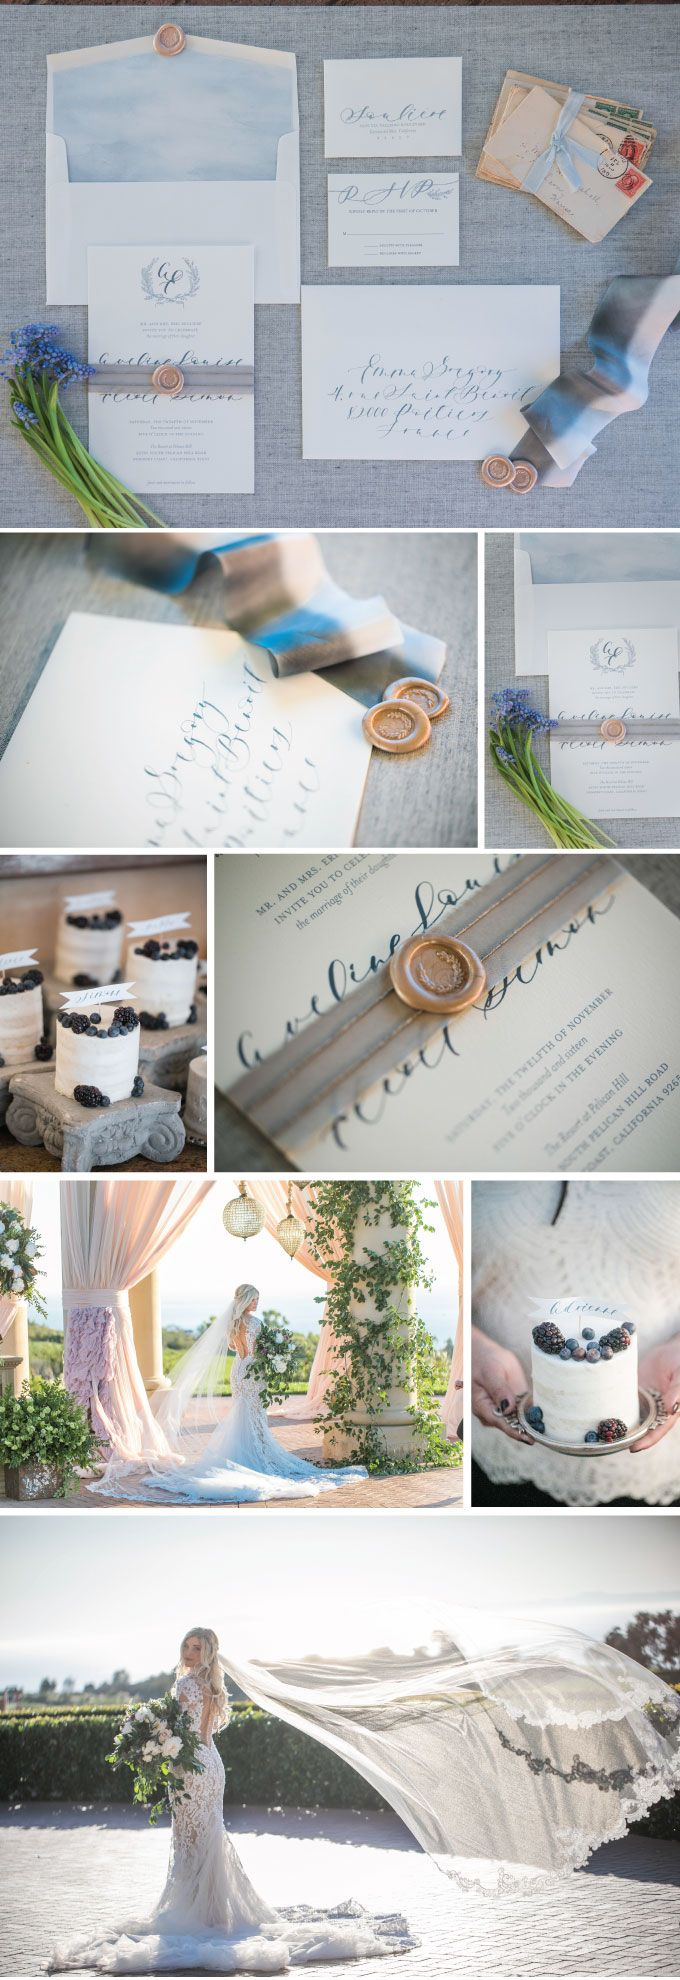 Paris by the Beach inspired wedding | Invitations by Wiley Valentine